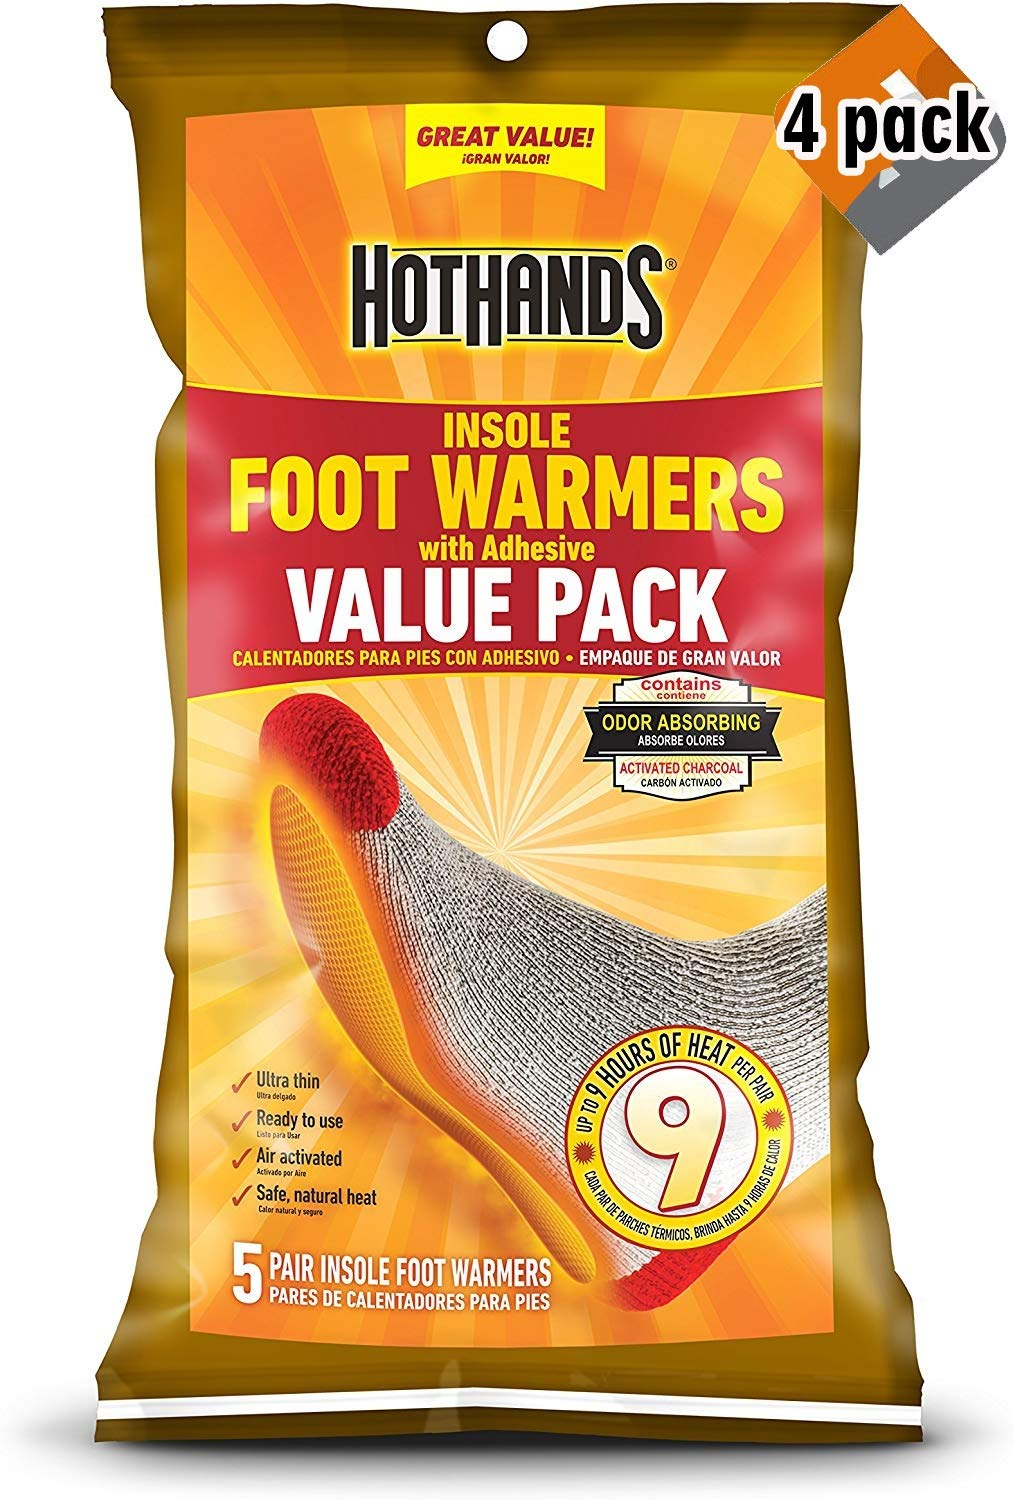 HotHands Insole Foot Warmer - 4 Pack by HotHands